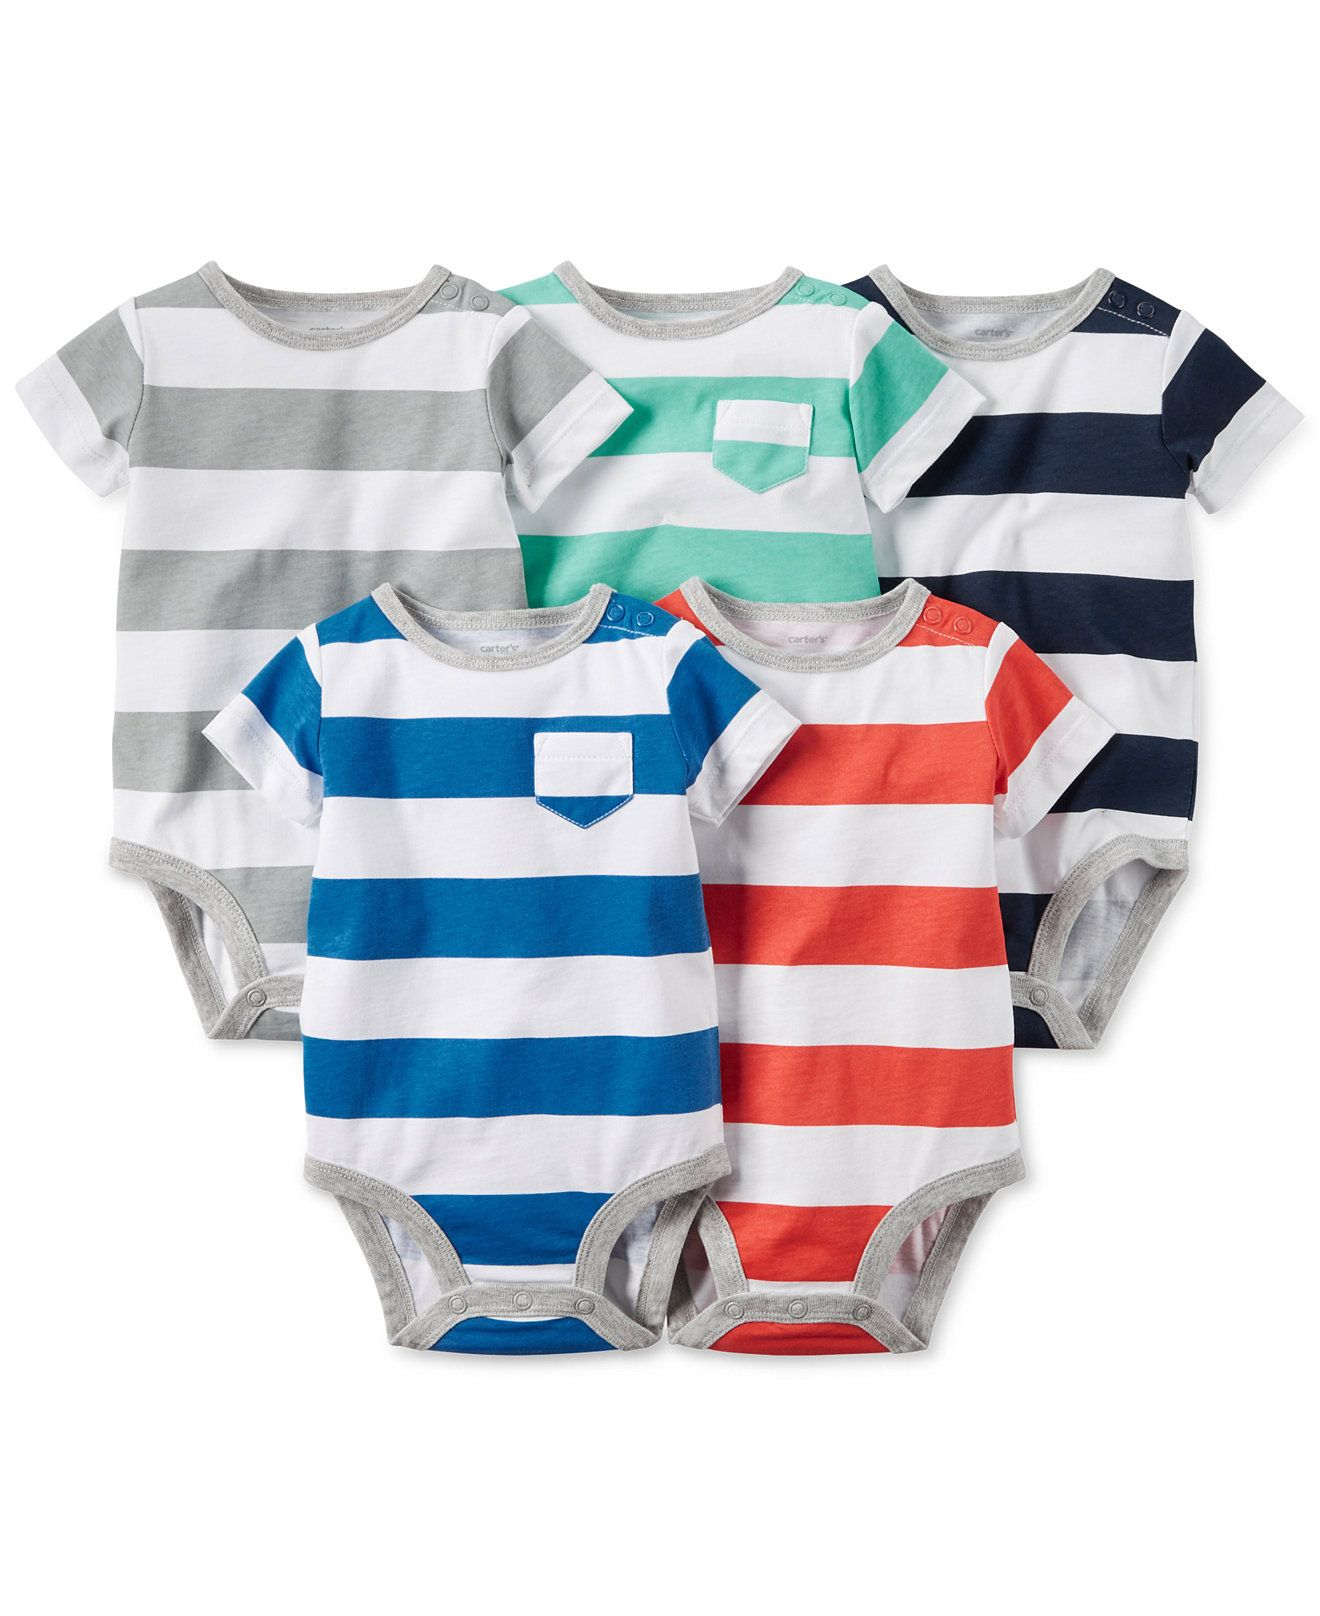 8e93a410b0 Carter s Baby Boys  5-Pack Stripe-Print Bodysuits - Newborn Shop - Kids    Baby - Macy s